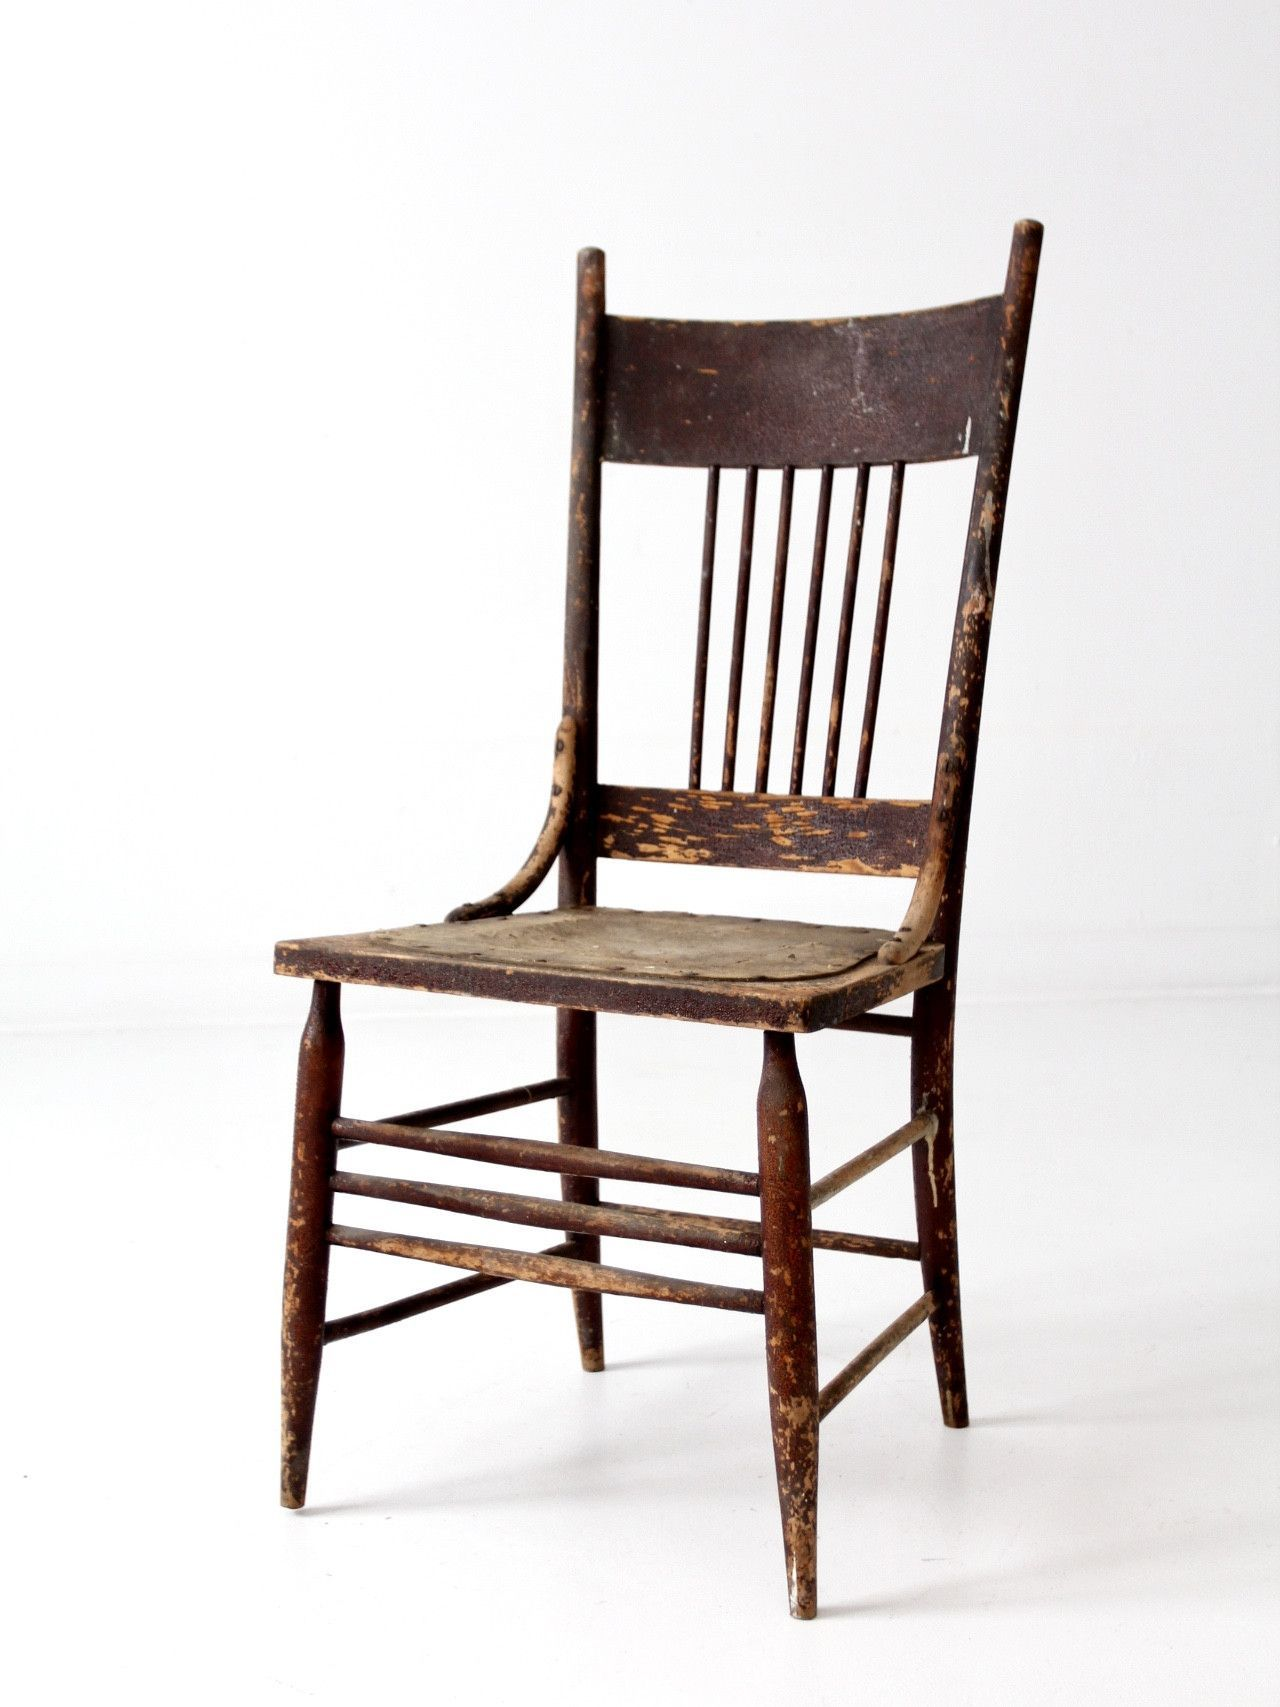 Antique Spindle Back Chair With Pressed Leather Seat Chair Leather Seat Wooden Chair